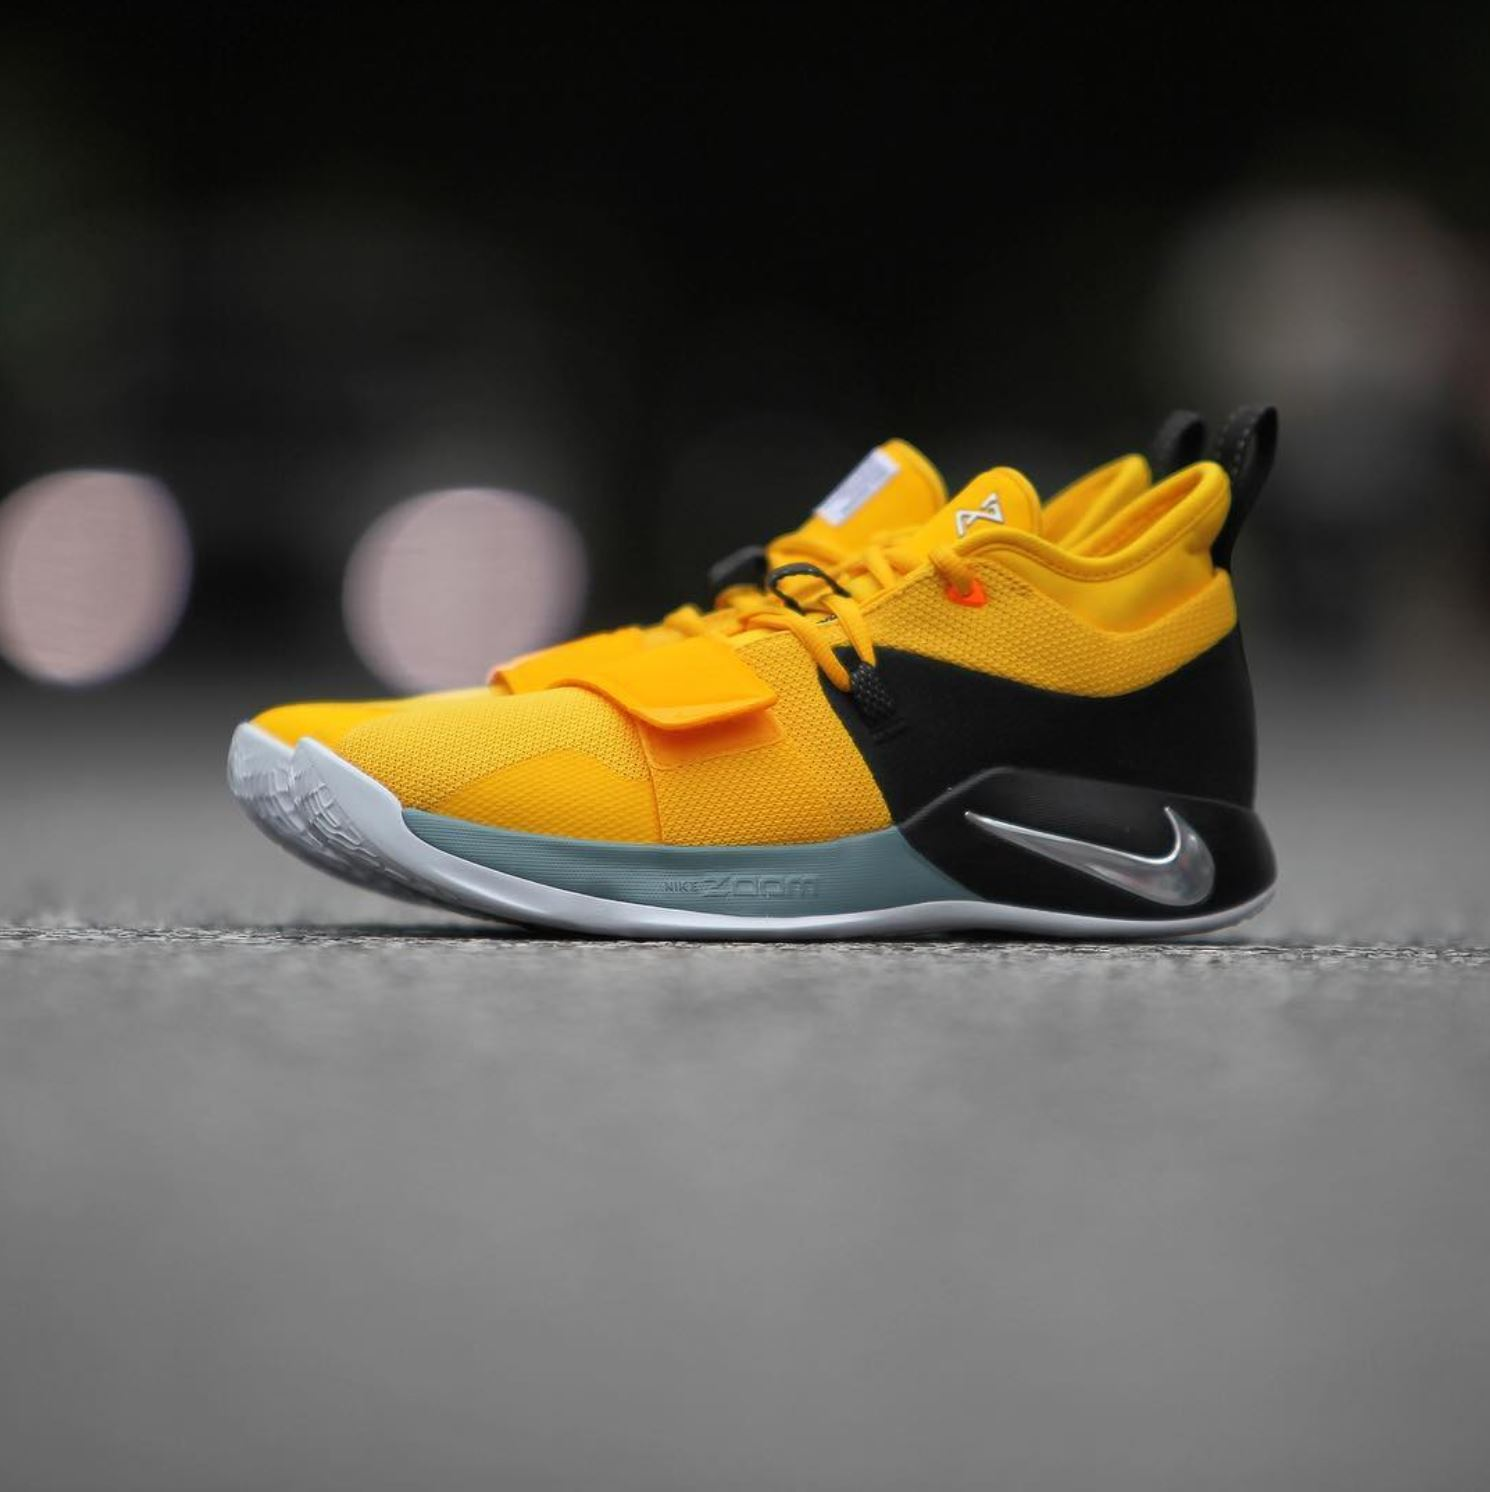 save off 128be ae0d4 The Nike PG 2.5 'Moon Exploration' May Celebrate the Second ...